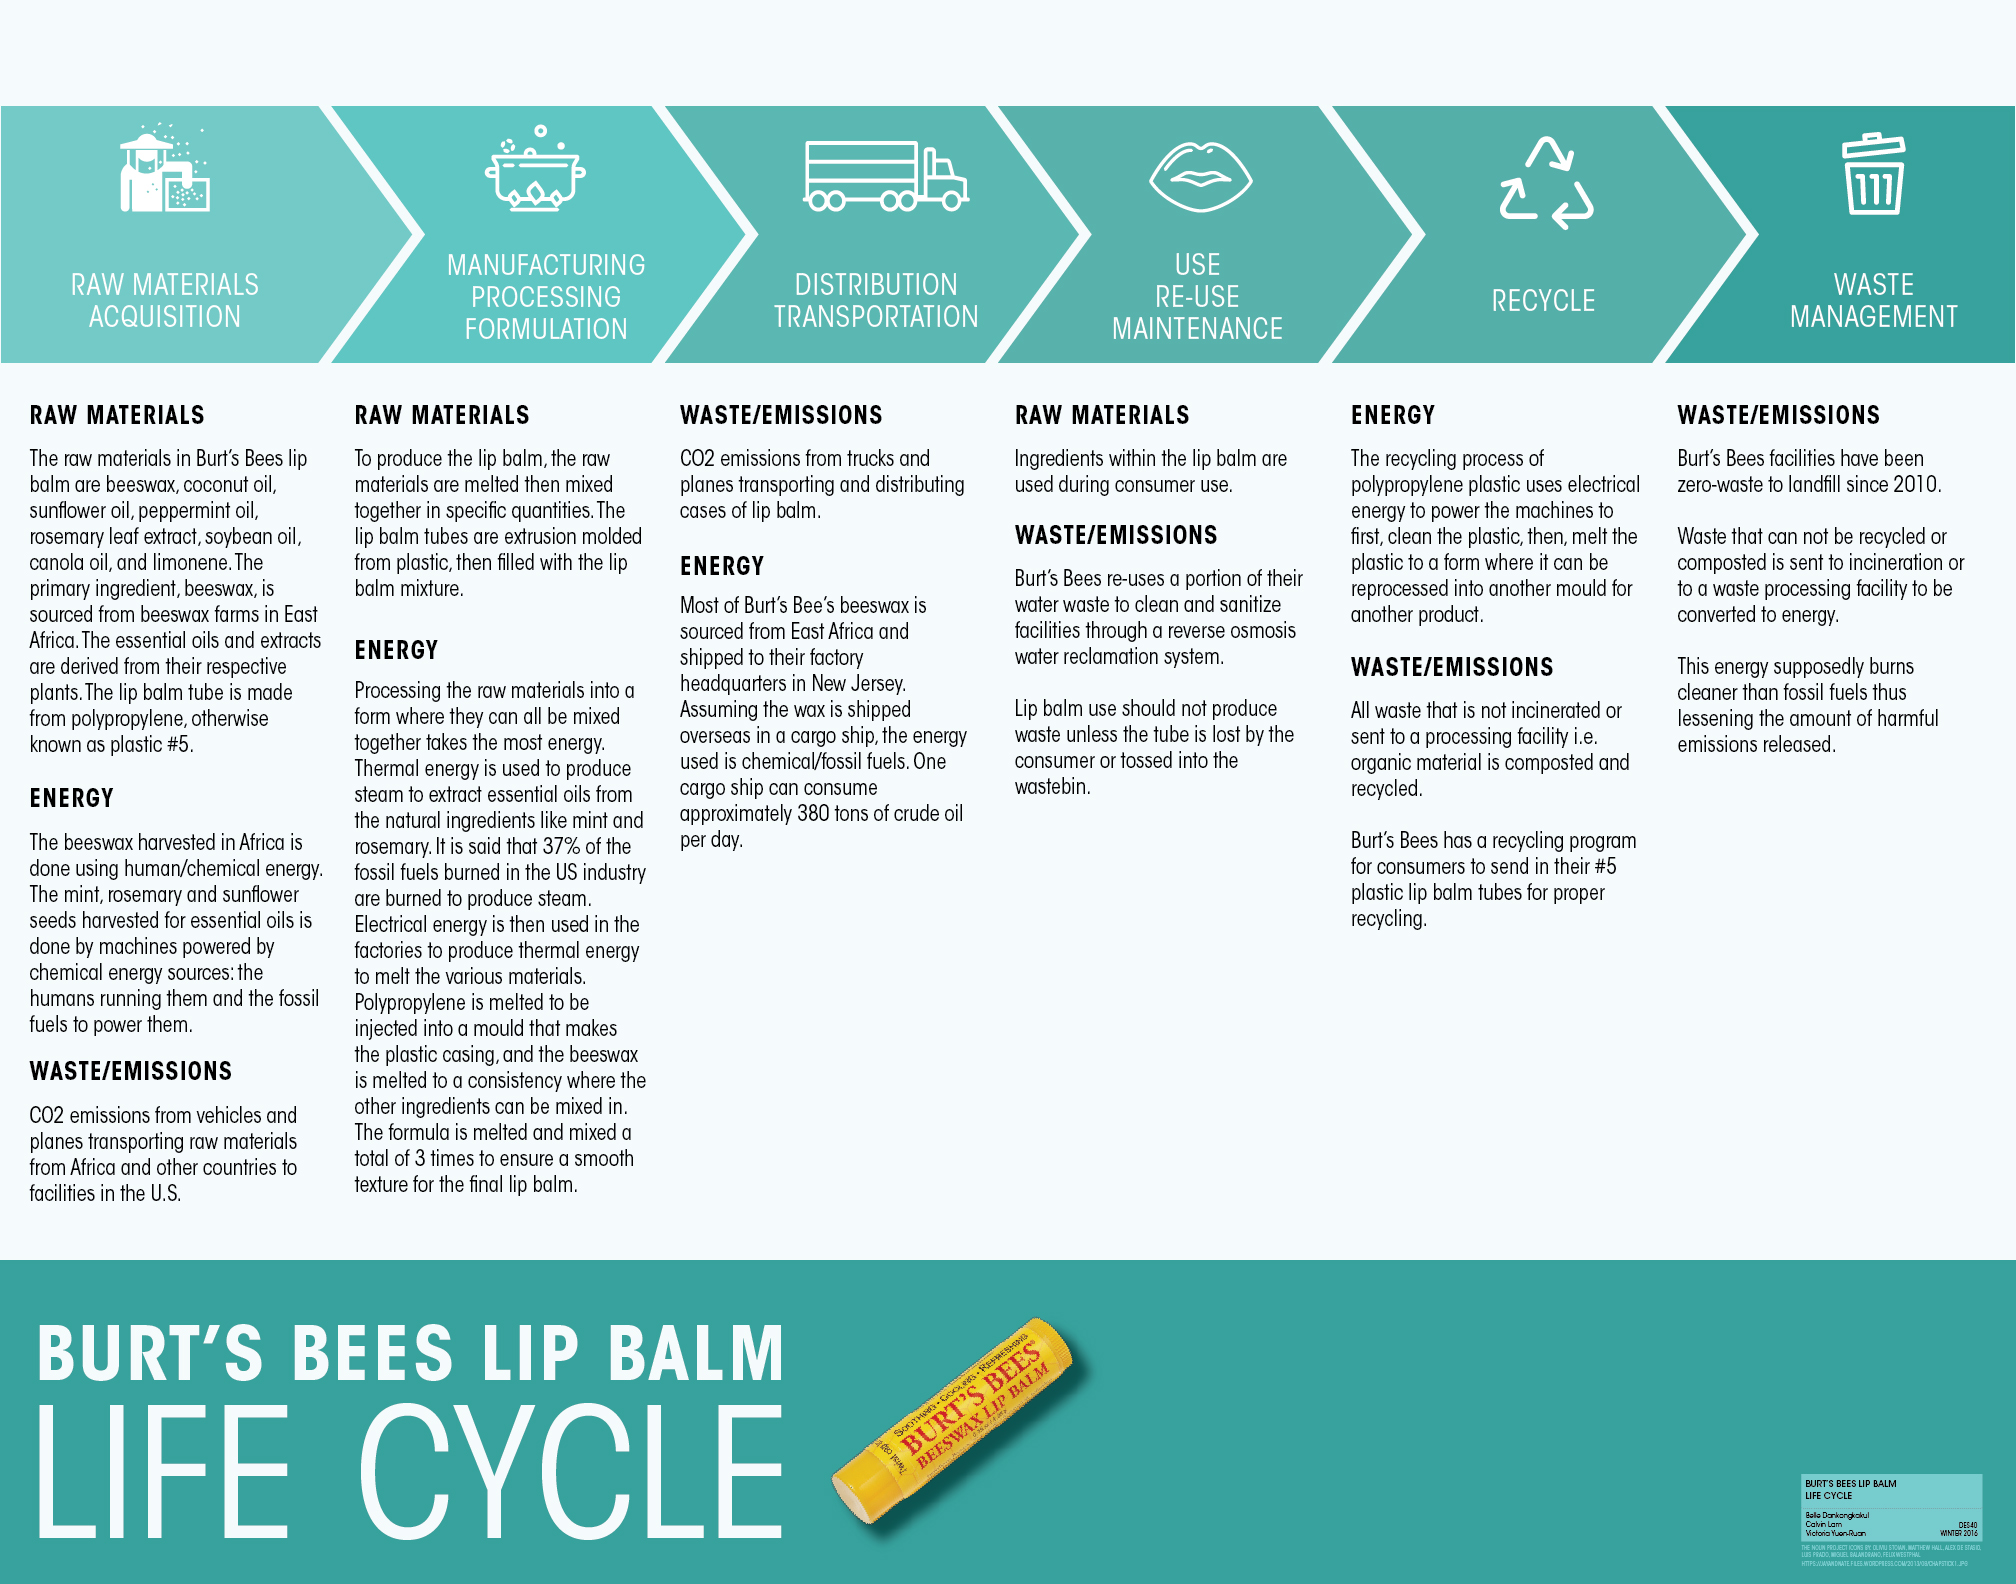 Burts Bees Lip Balm Design Life Cycle Process Flow Diagram Reaction Injection Moulding